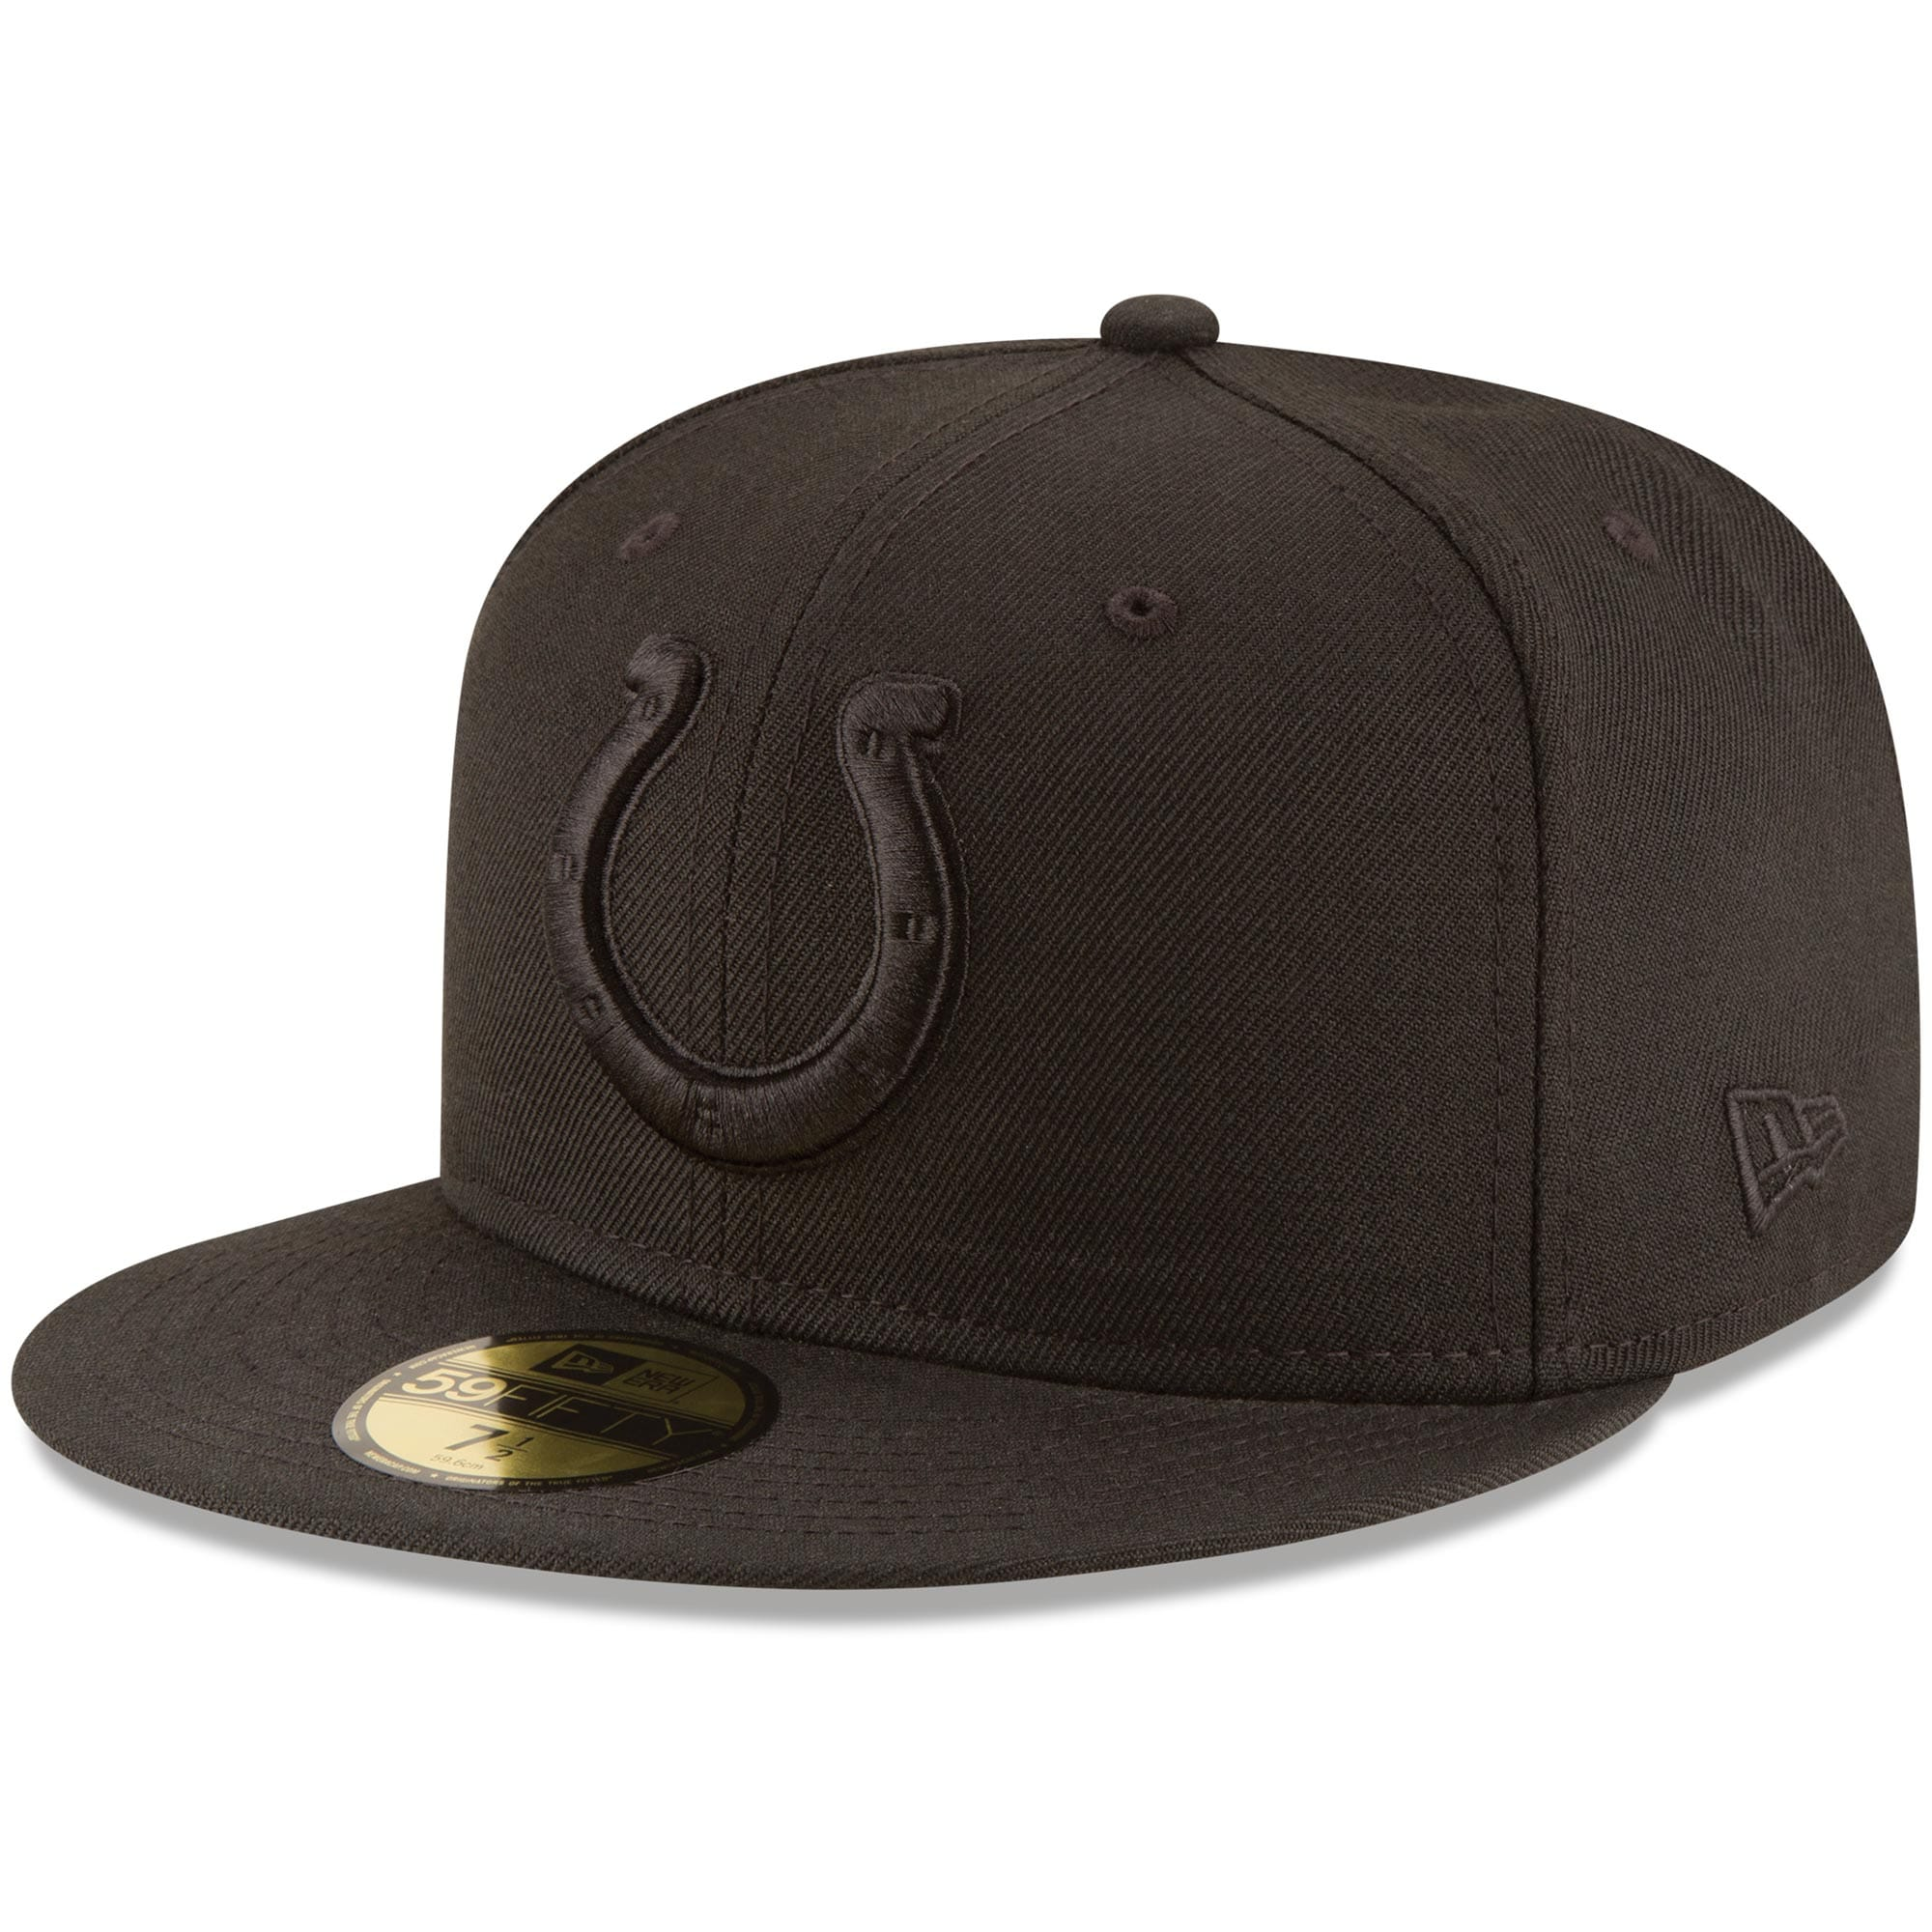 Indianapolis Colts New Era Black on Black 59FIFTY Fitted Hat